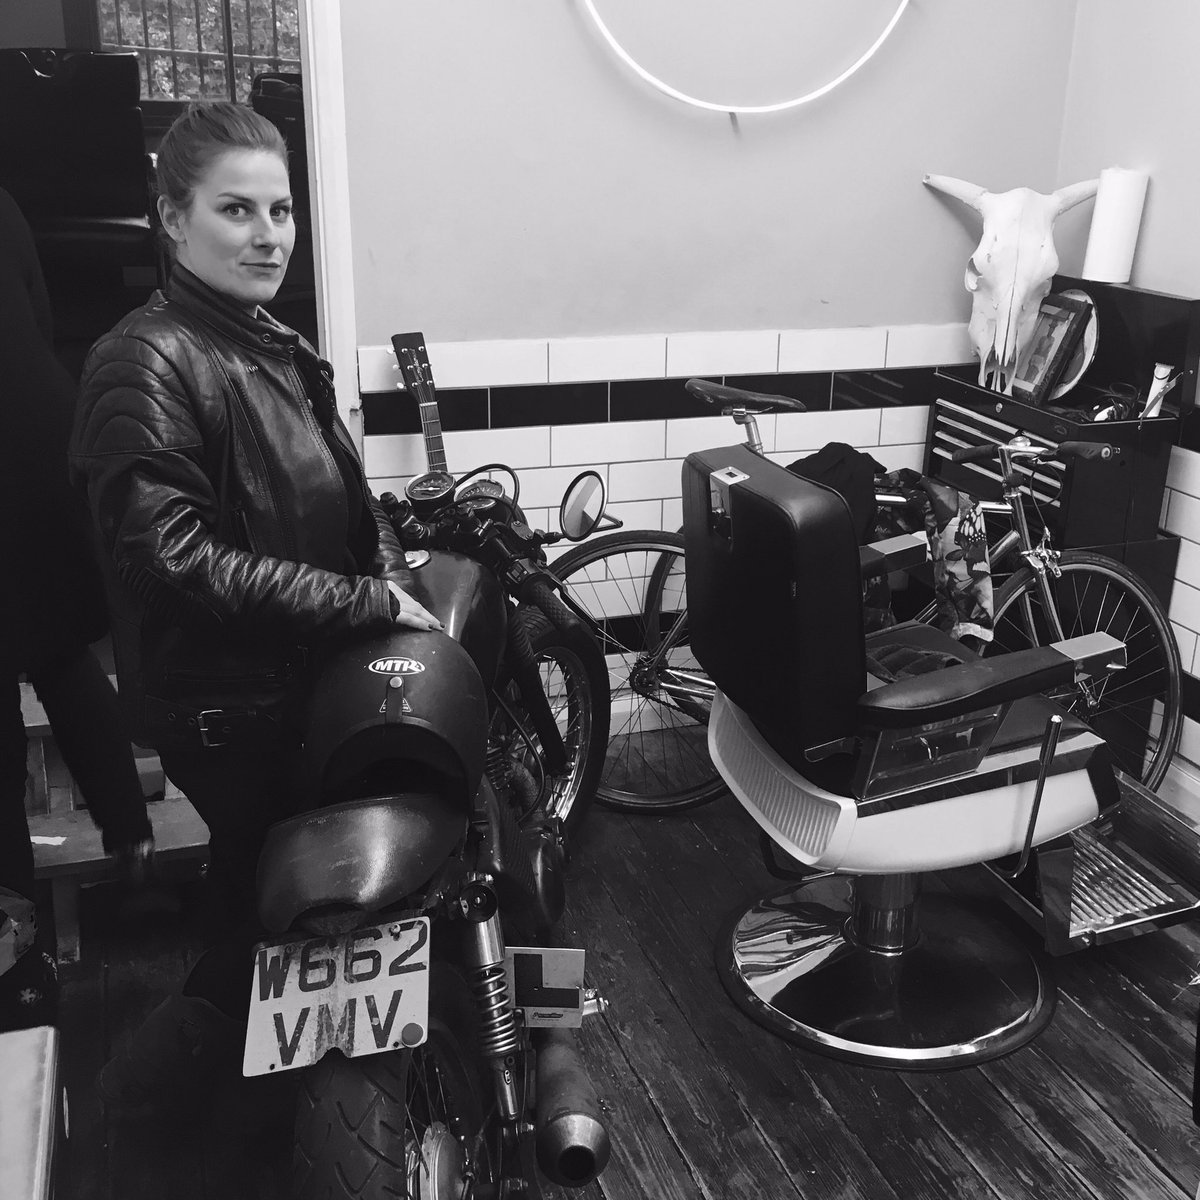 Hound Dog Alicia bossin&#39; the shop @hounddogbarbers #london #barber #e2 #Hackney<br>http://pic.twitter.com/AZAvyCfRe3